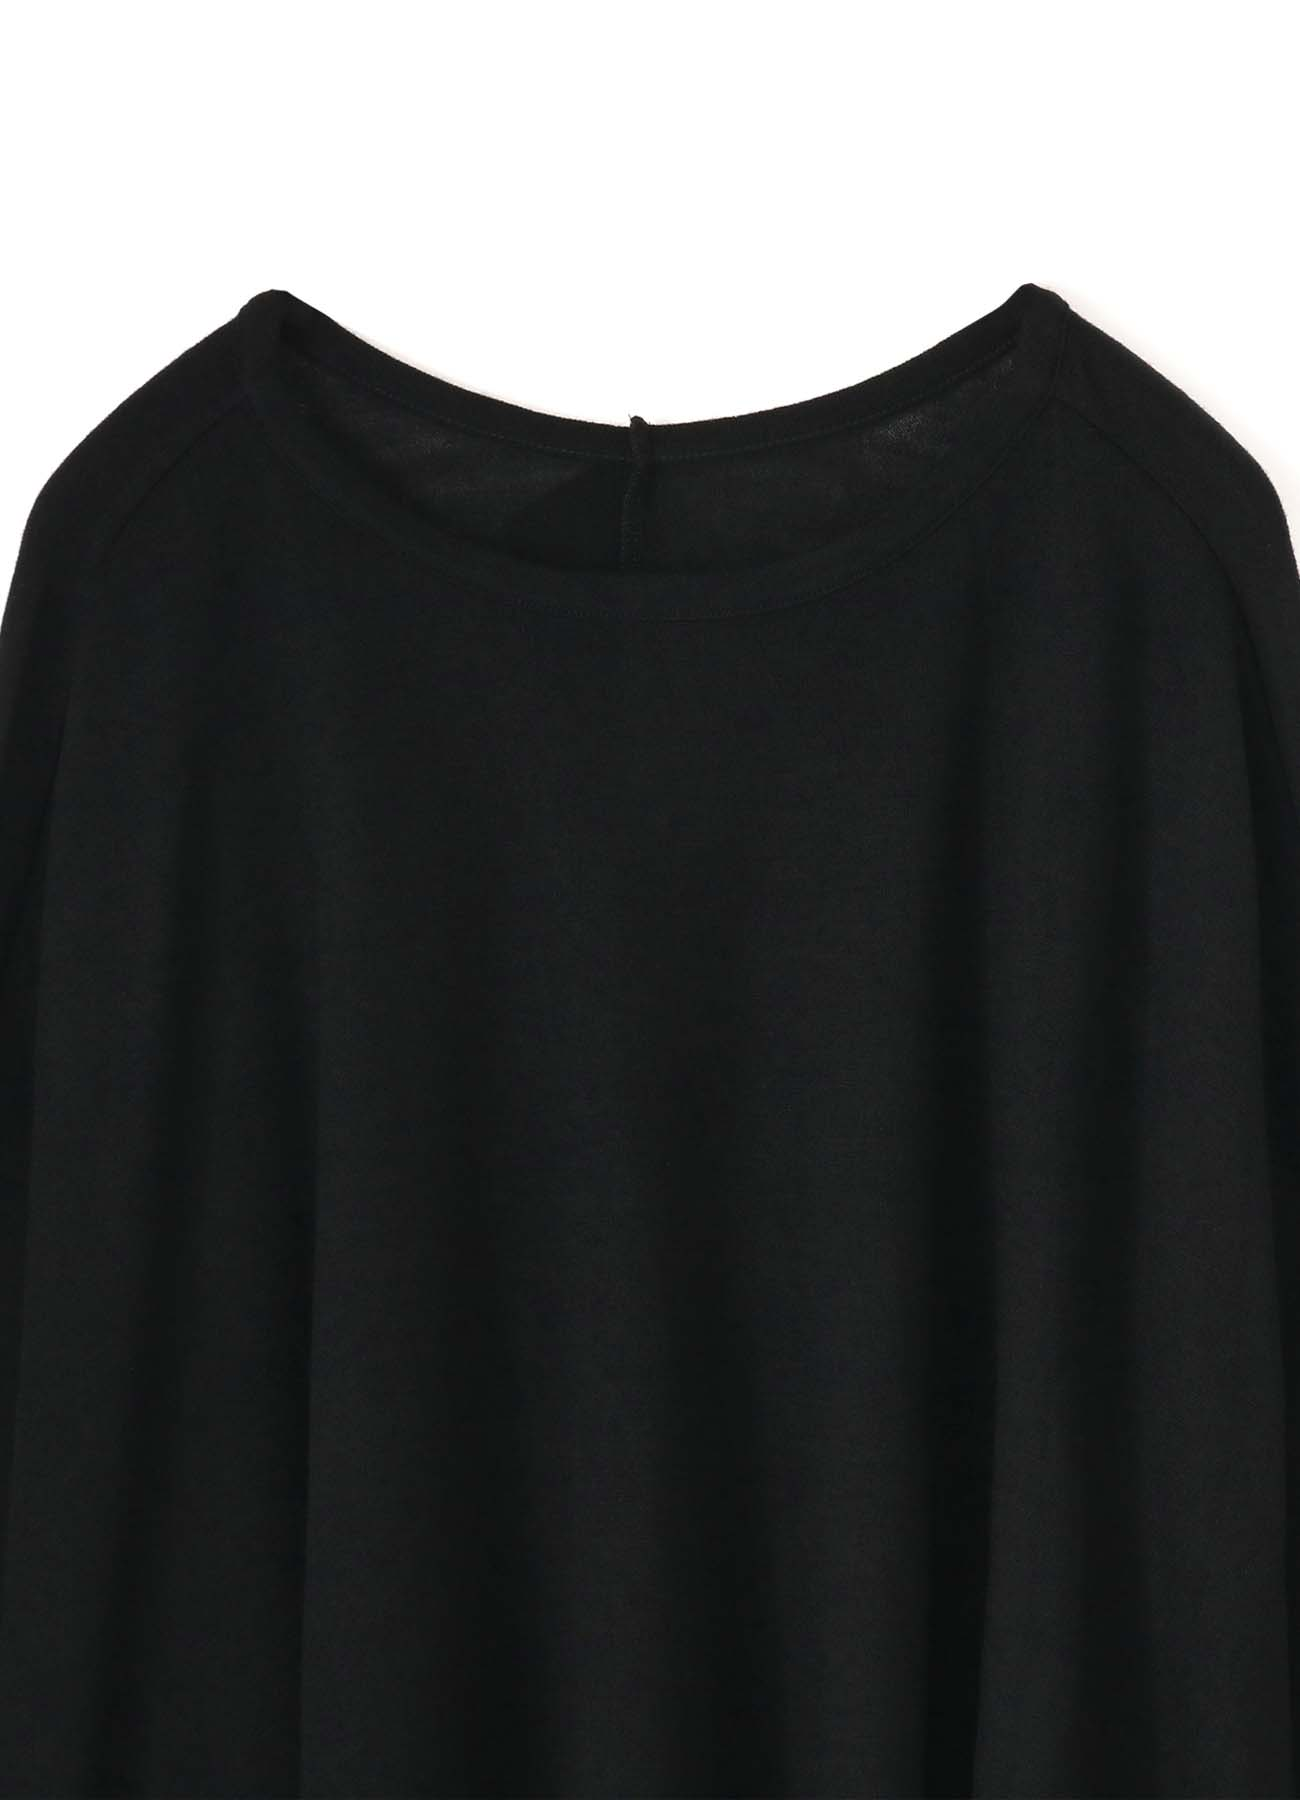 AIRY SPUN MILLED FRILL PO